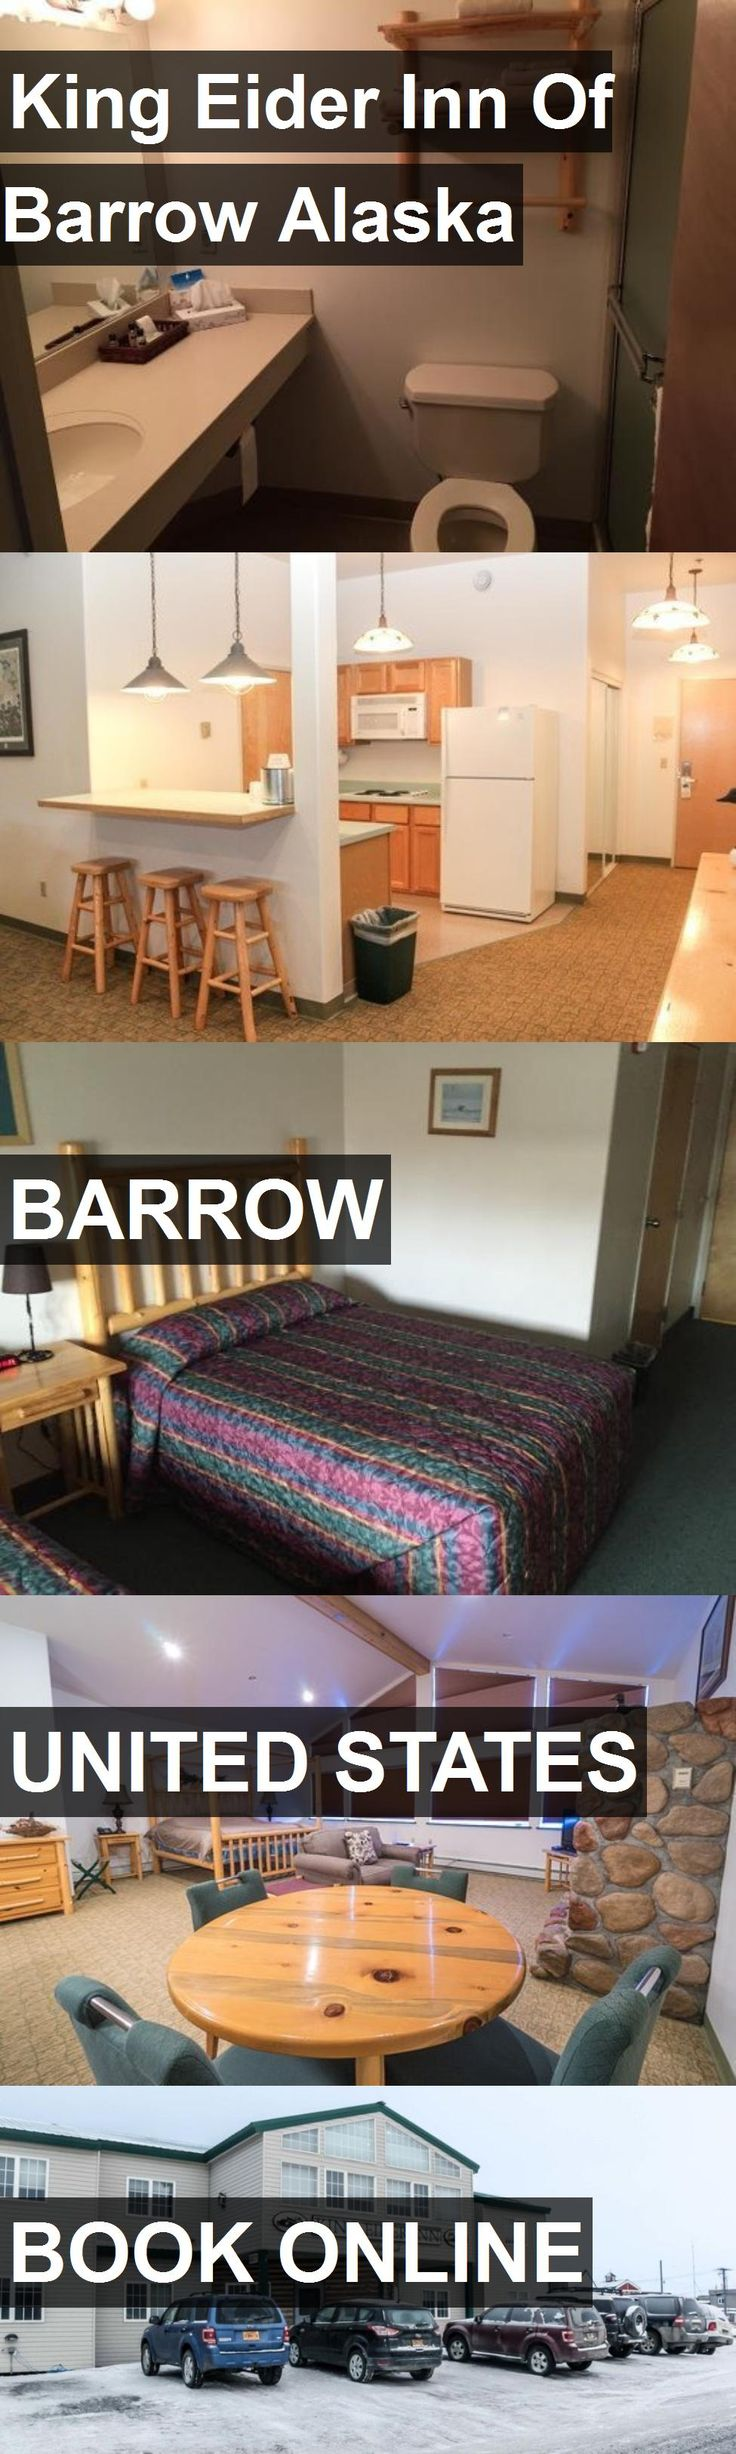 Hotel King Eider Inn Of Barrow Alaska in Barrow, United States. For more information, photos, reviews and best prices please follow the link. #UnitedStates #Barrow #travel #vacation #hotel